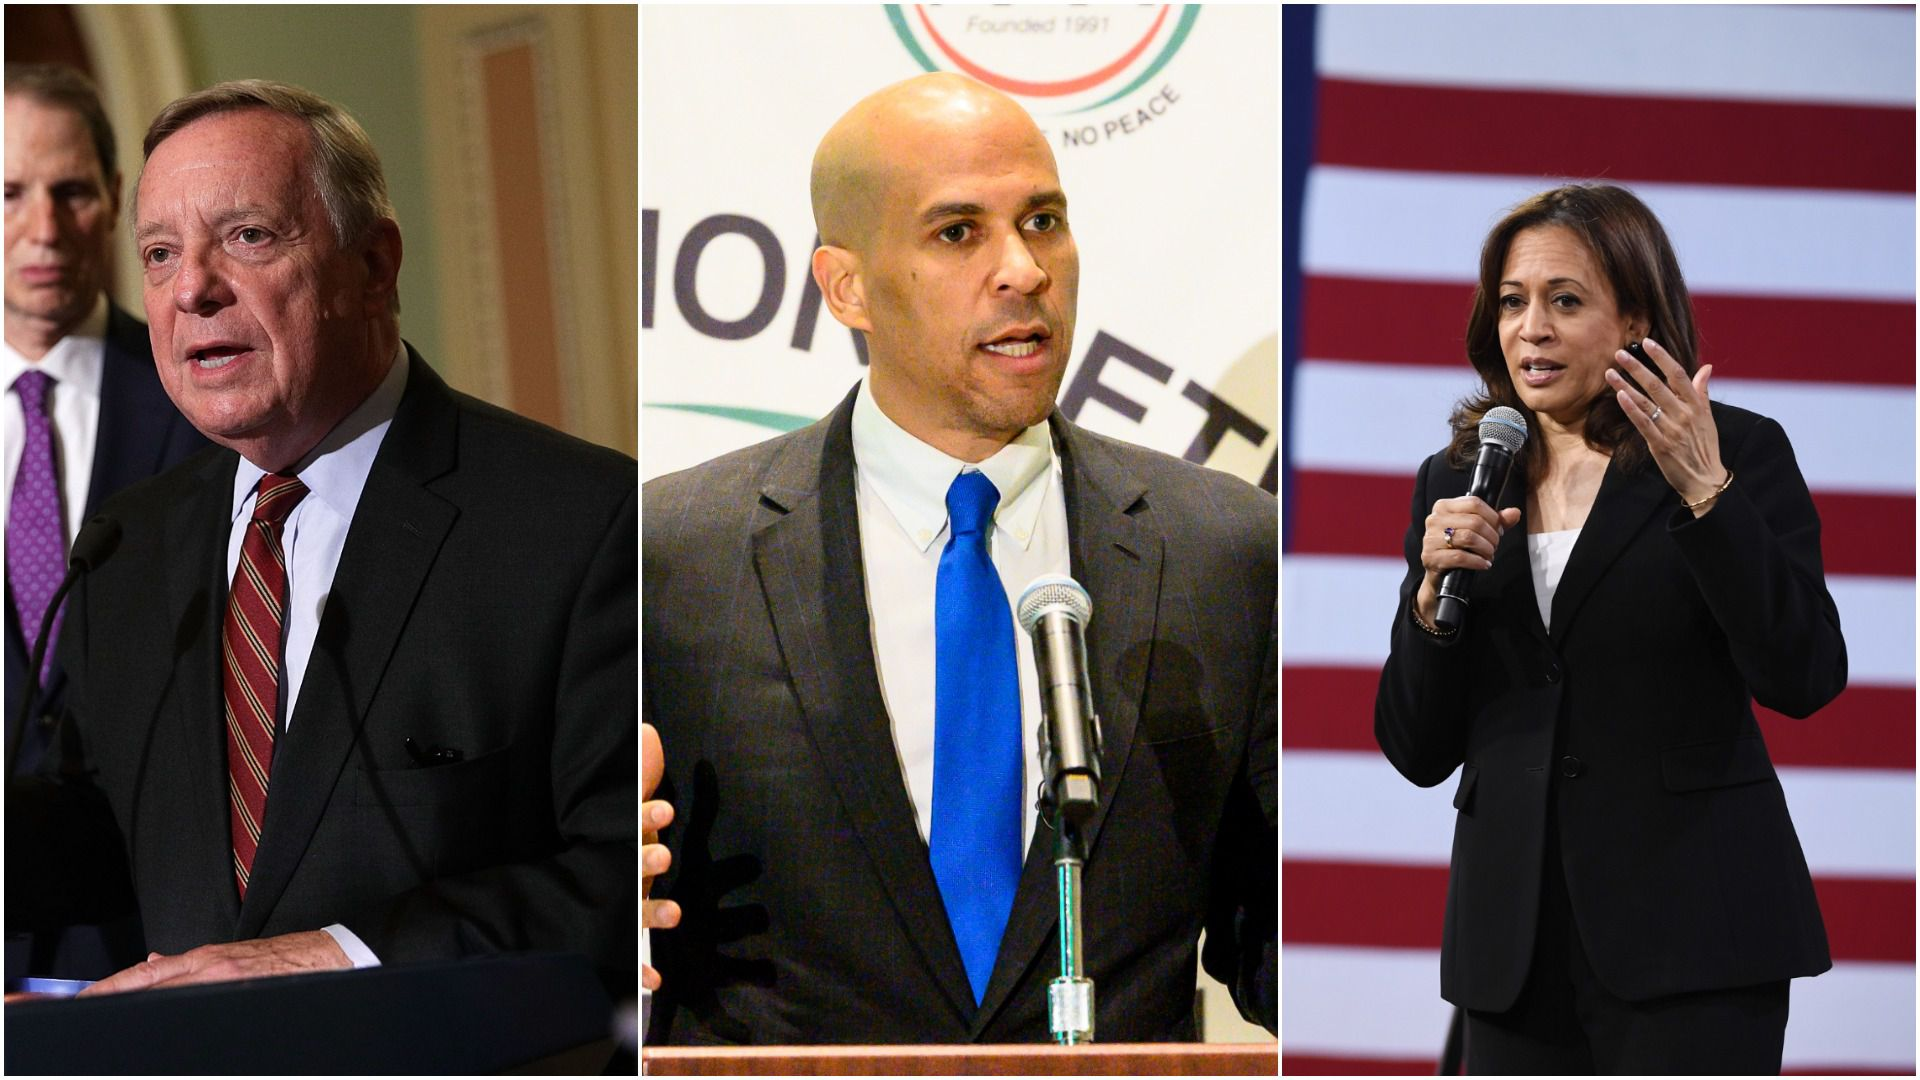 Senators Dick Durbin, Cory Booker and Kamala Harris